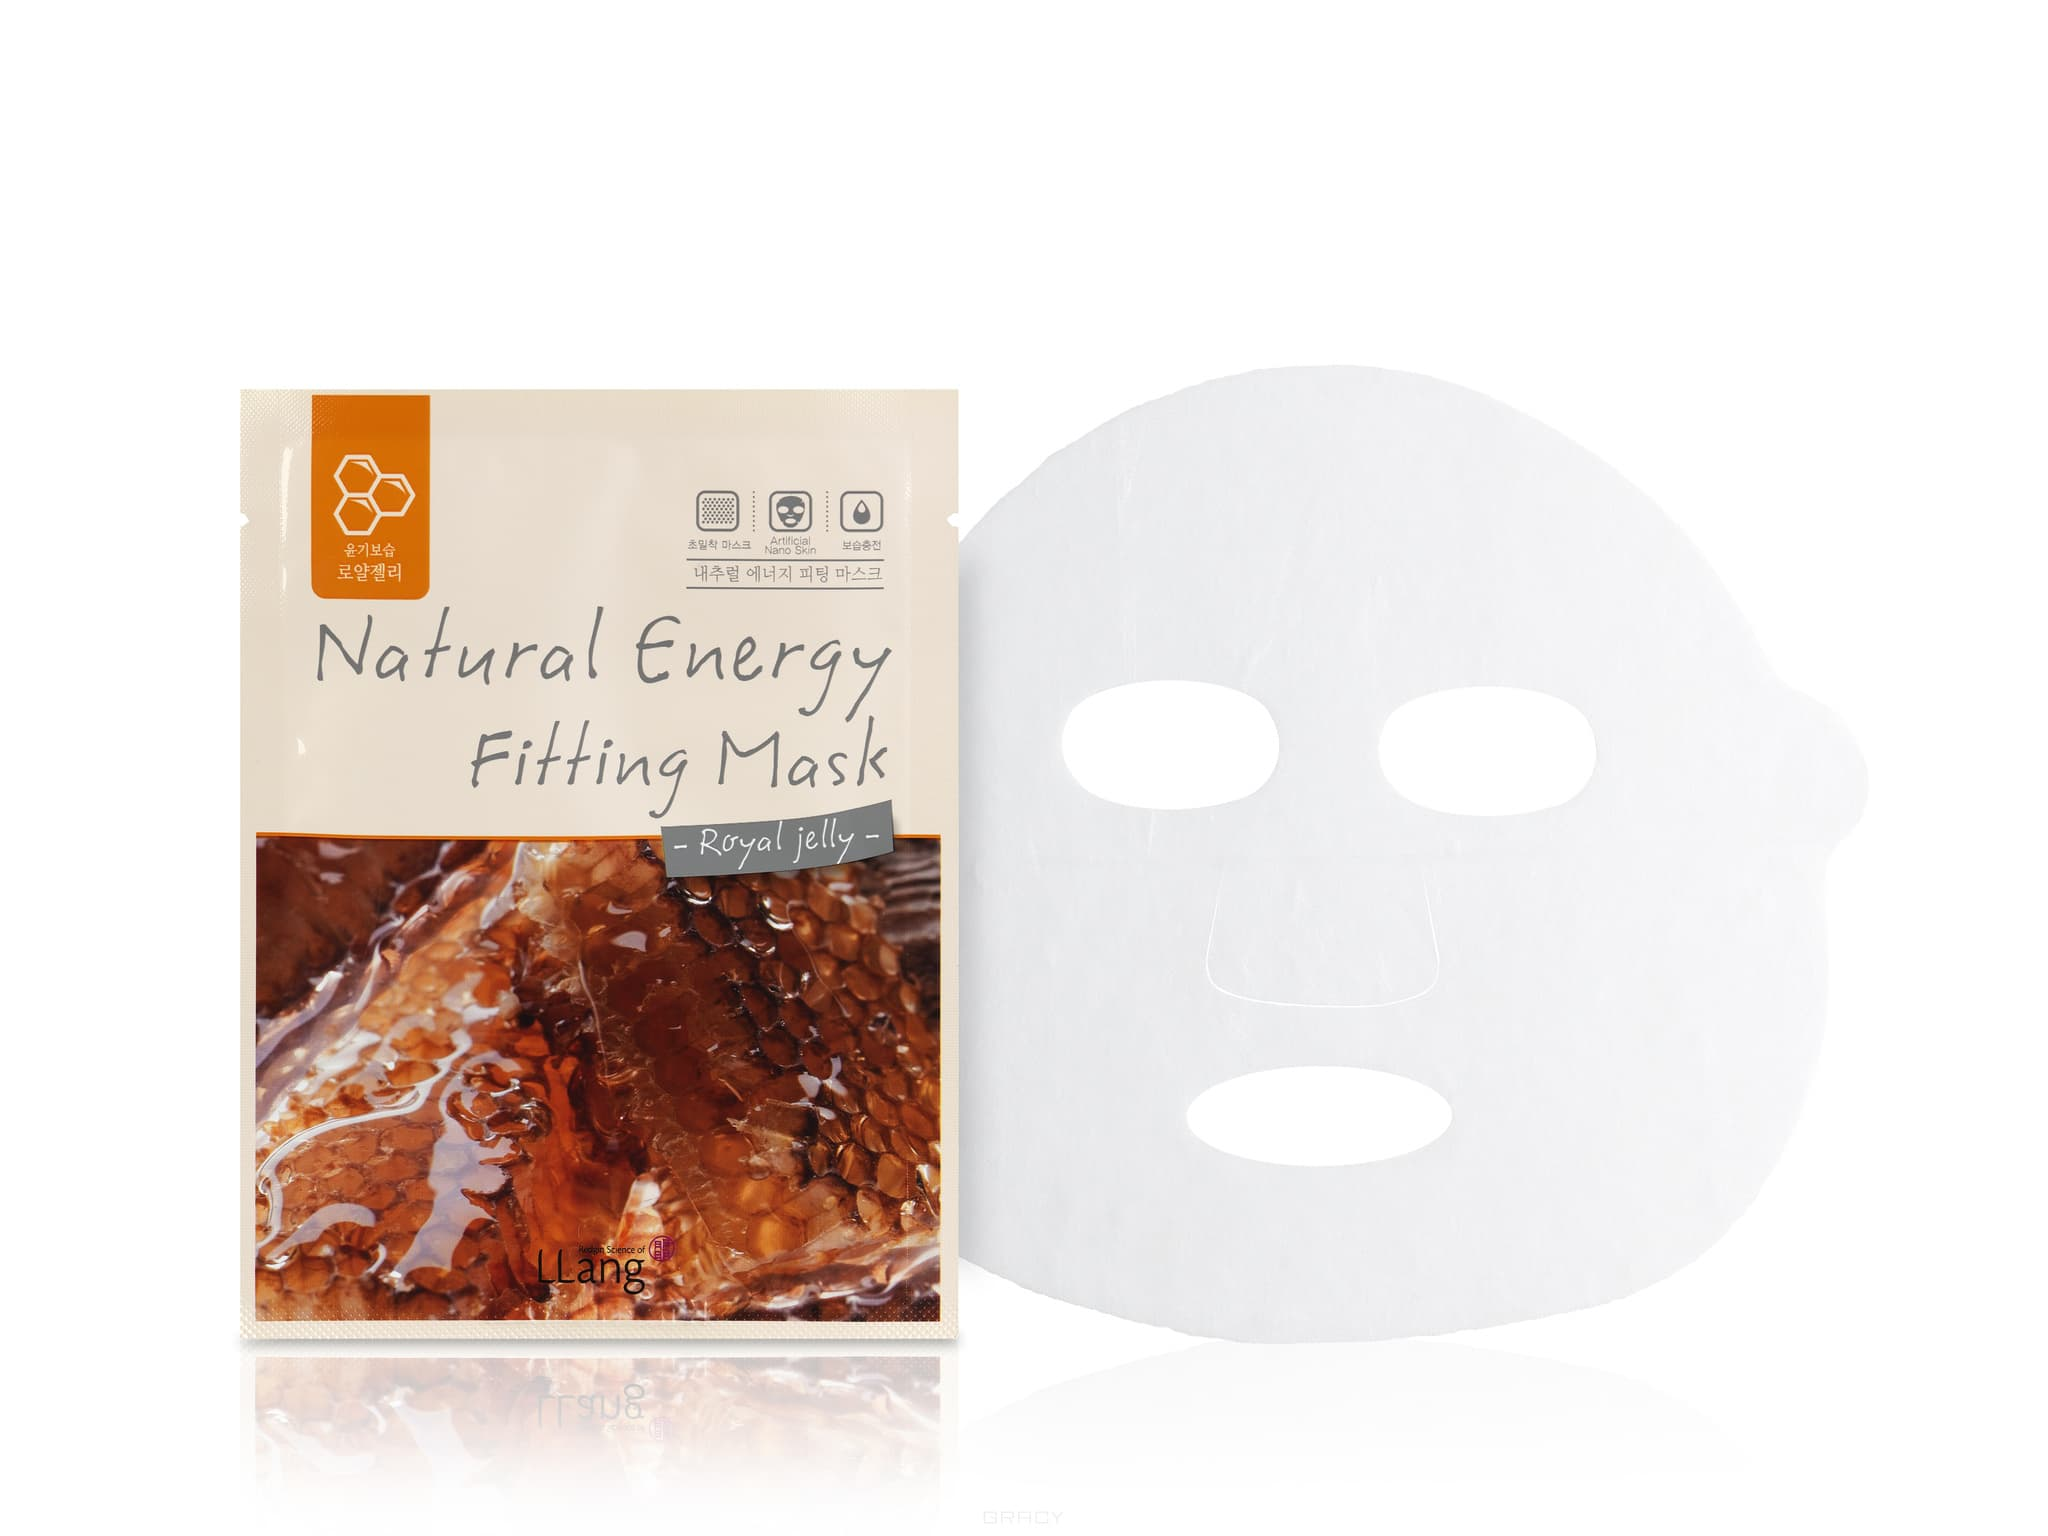 LLang Тканевая маска с экстрактом пчелиного маточного молочка Natural Energy Fitting Mask (Royal jelly), 20 мл peace education at the national university of rwanda